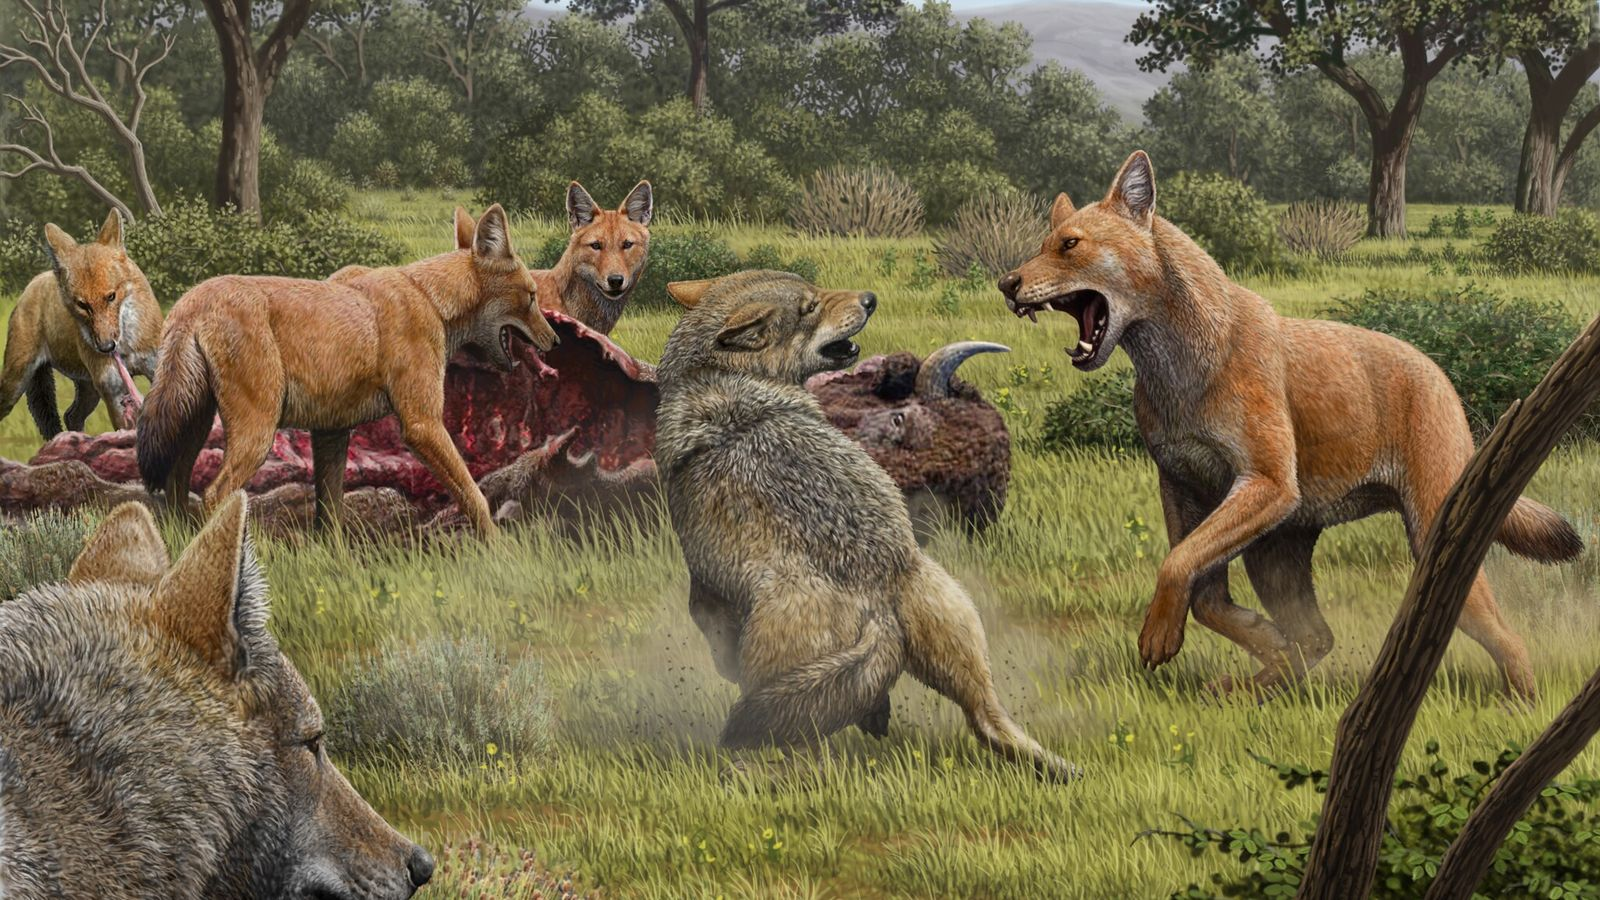 Dire wolves, with reddish fur, facing off against grey wolves. This image, made by artist Mauricio ...